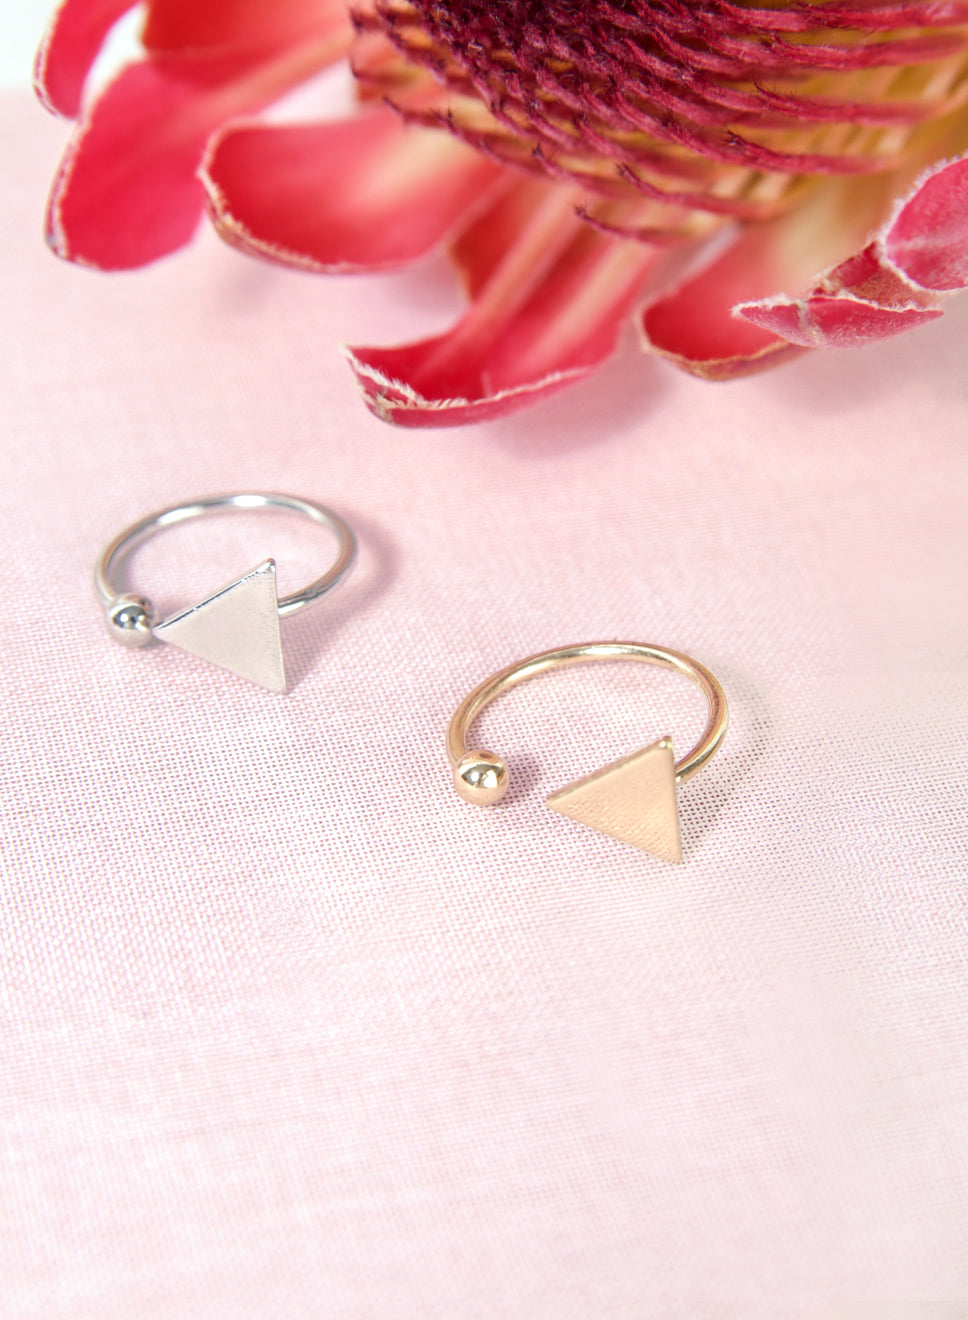 MICA Triangle Sphere Ring at $ 14.00 only sold at And Well Dressed Online Fashion Store Singapore